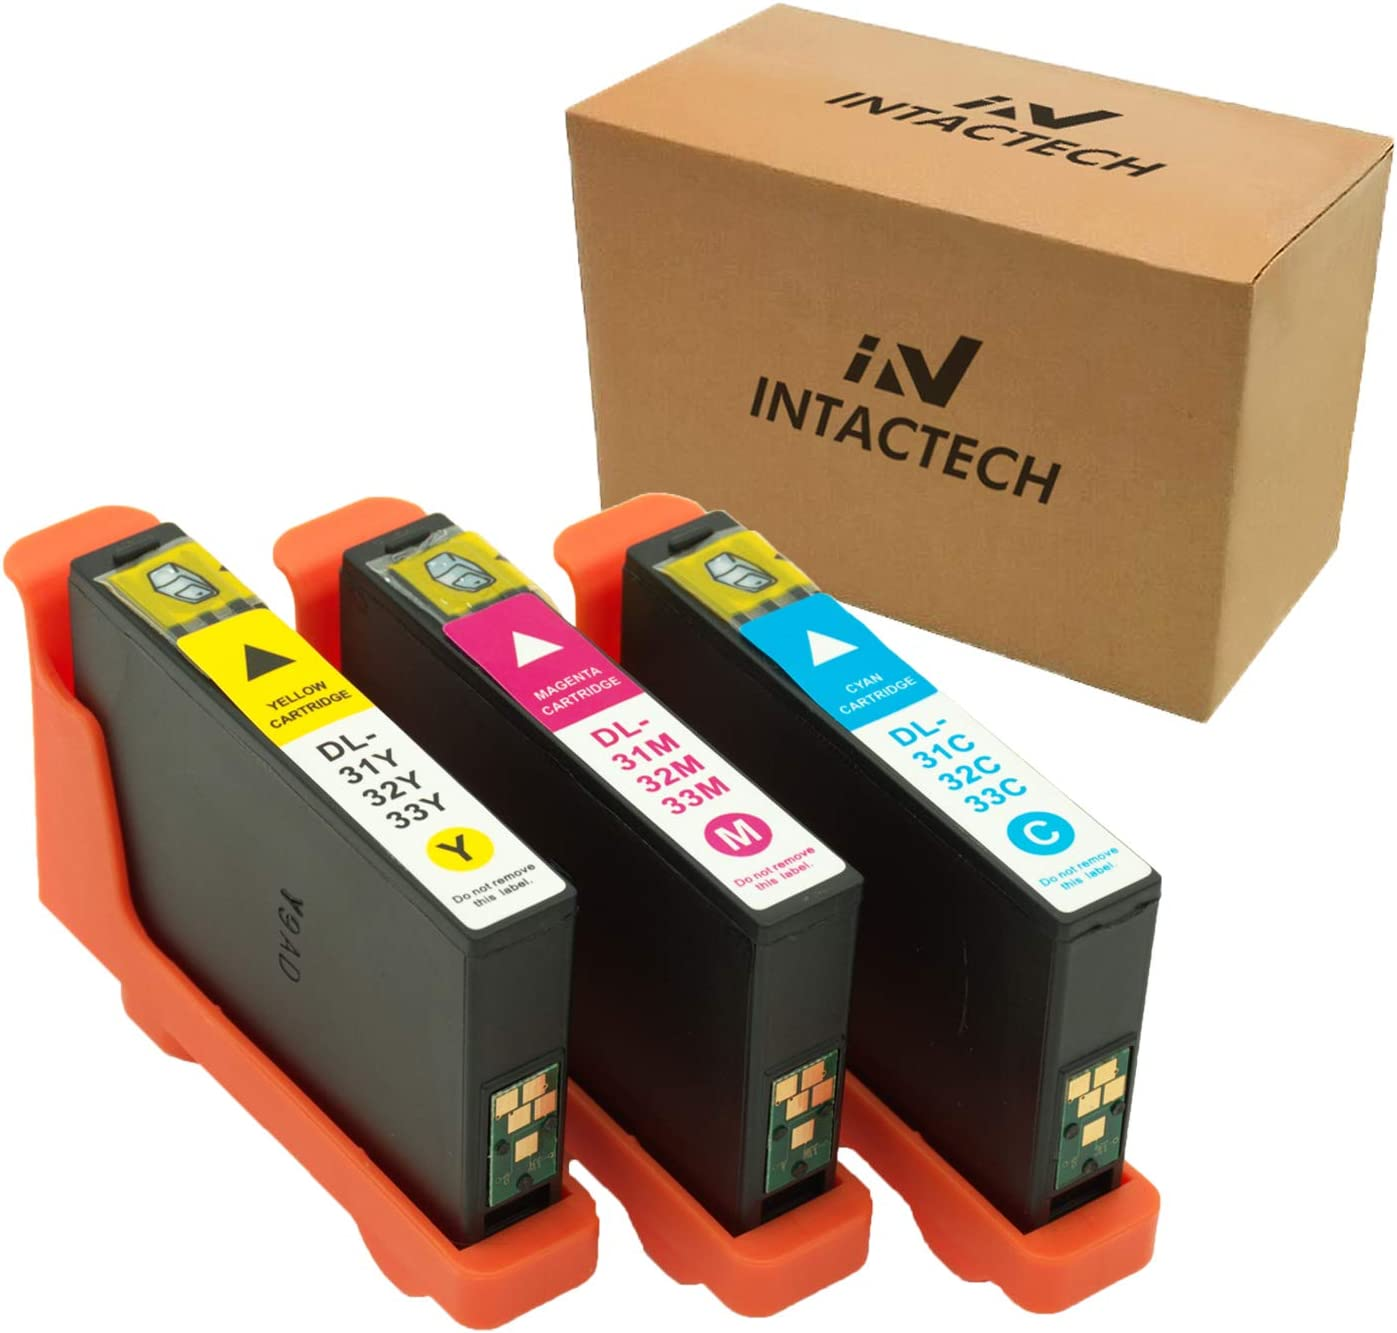 Intactech Replacement for Dell Series 31 32 33 V525w V725w Color Ink Cartridges (1 Cyan, 1 Magenta, 1 Yellow, 3 Color Pack) Work for Dell V525w V725w Printer